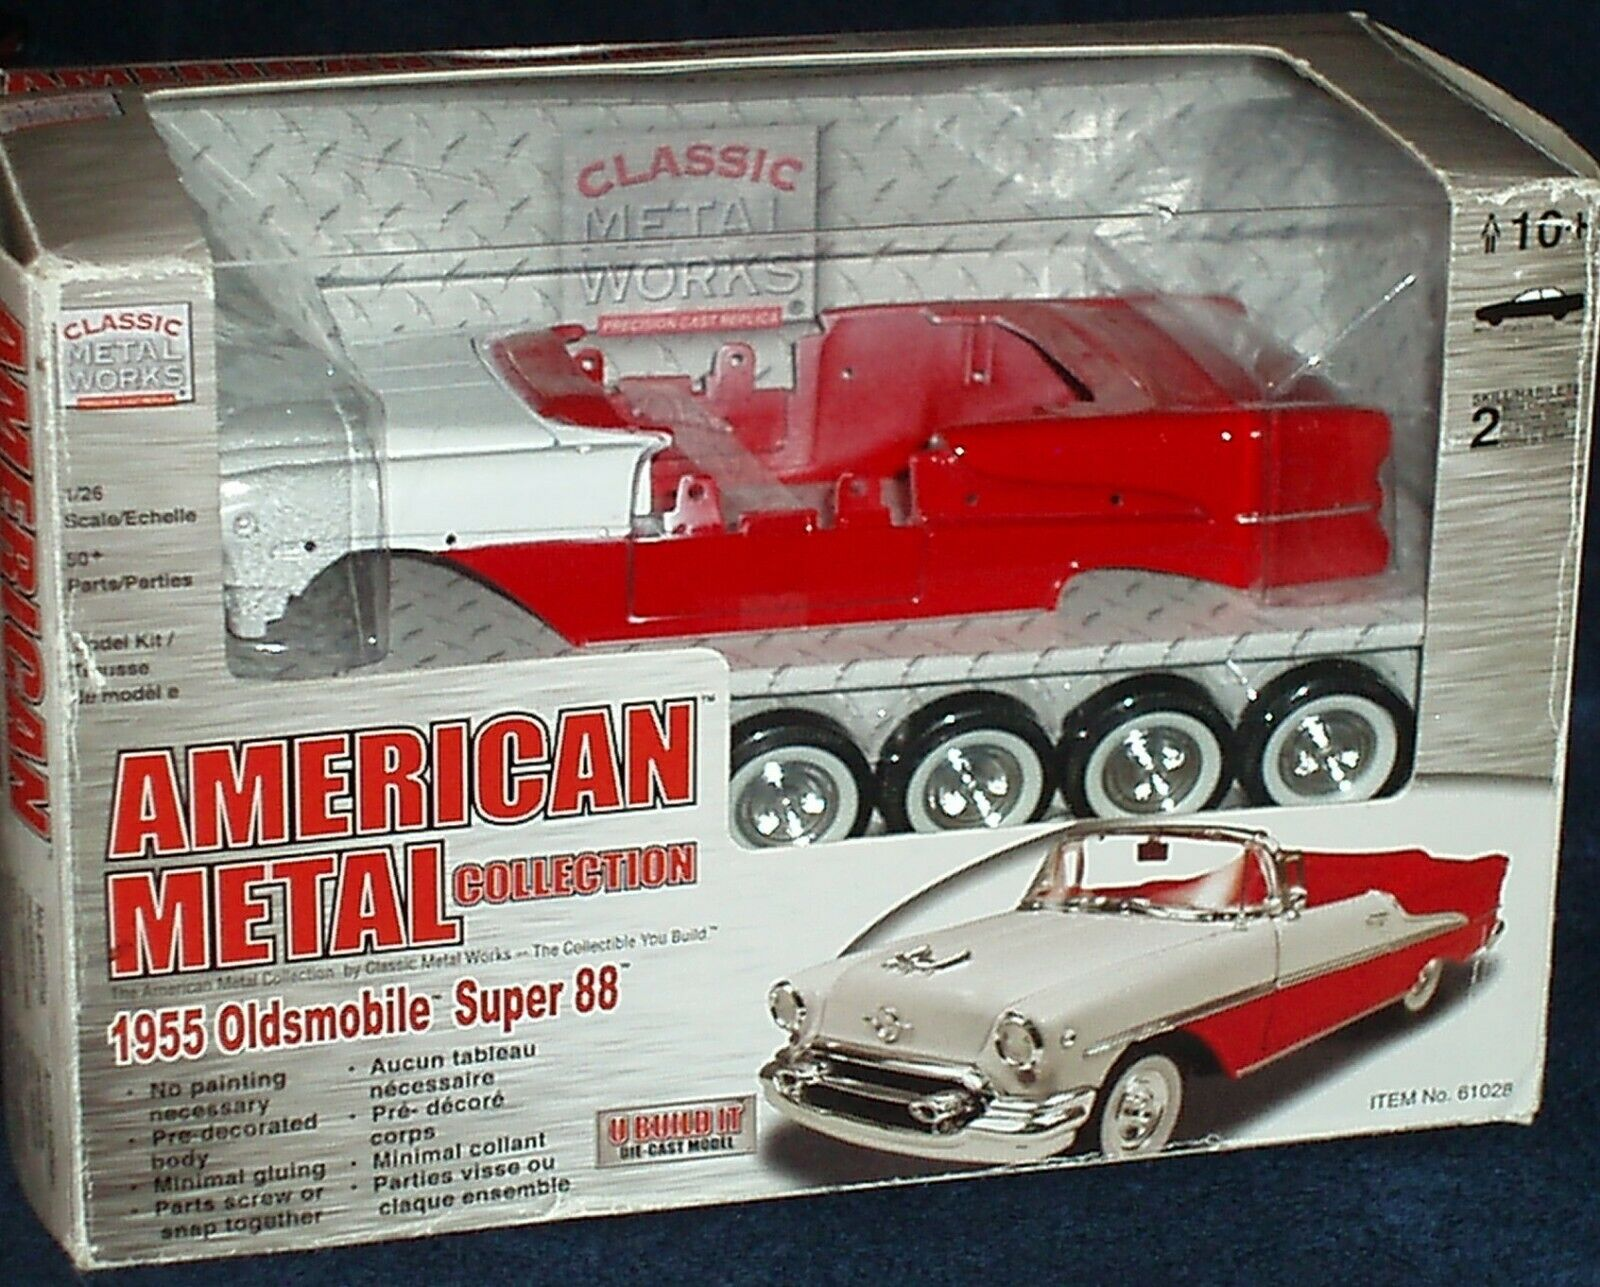 CLASSIC METAL WORKS 1955 OLDSMOBILE SUPER 88 CONGrünABLE ASSEMBLY KIT 1 26